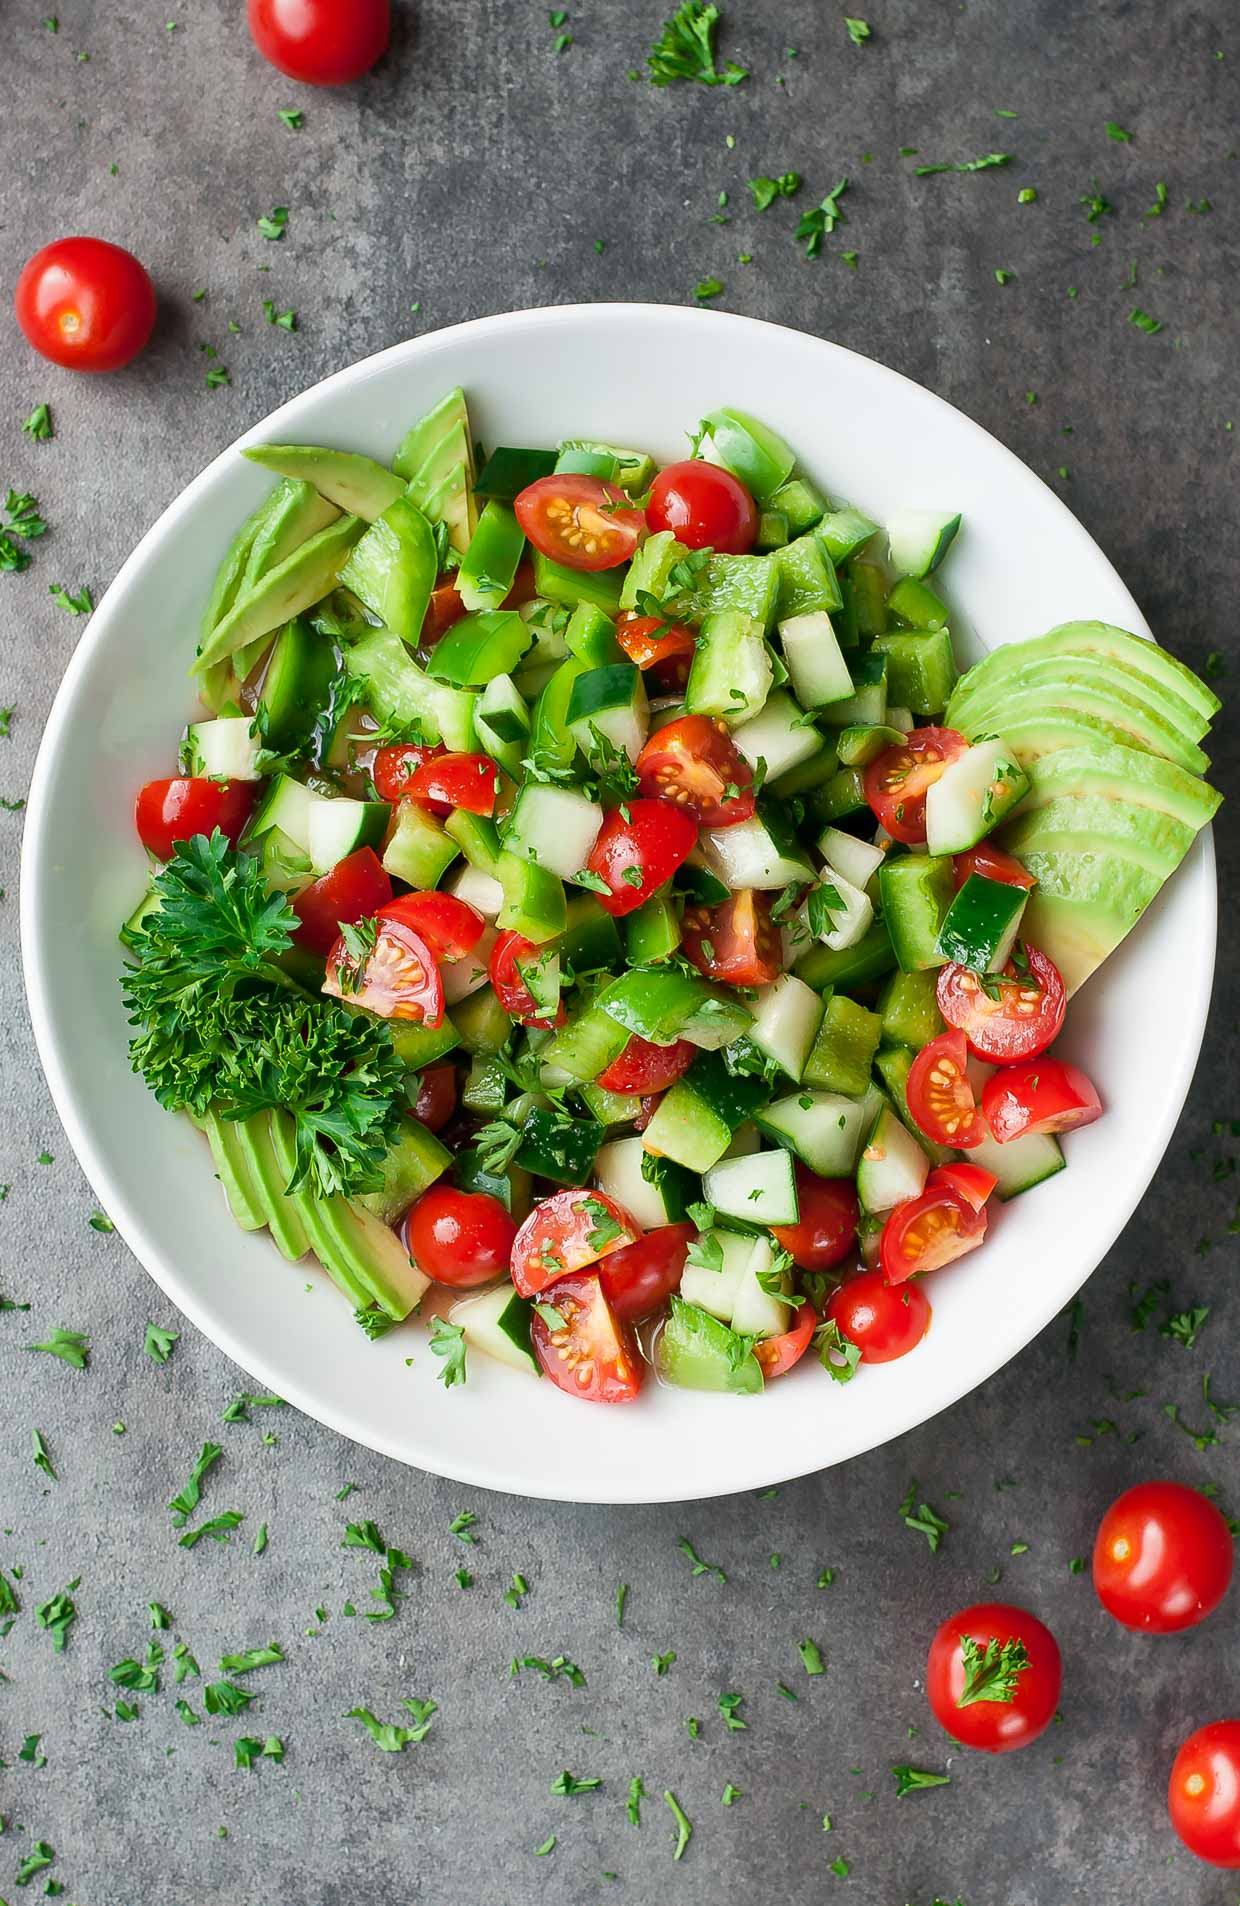 20 Easy Healthy Salad Recipes :: Healthy Avocado Cucumber Tomato Salad